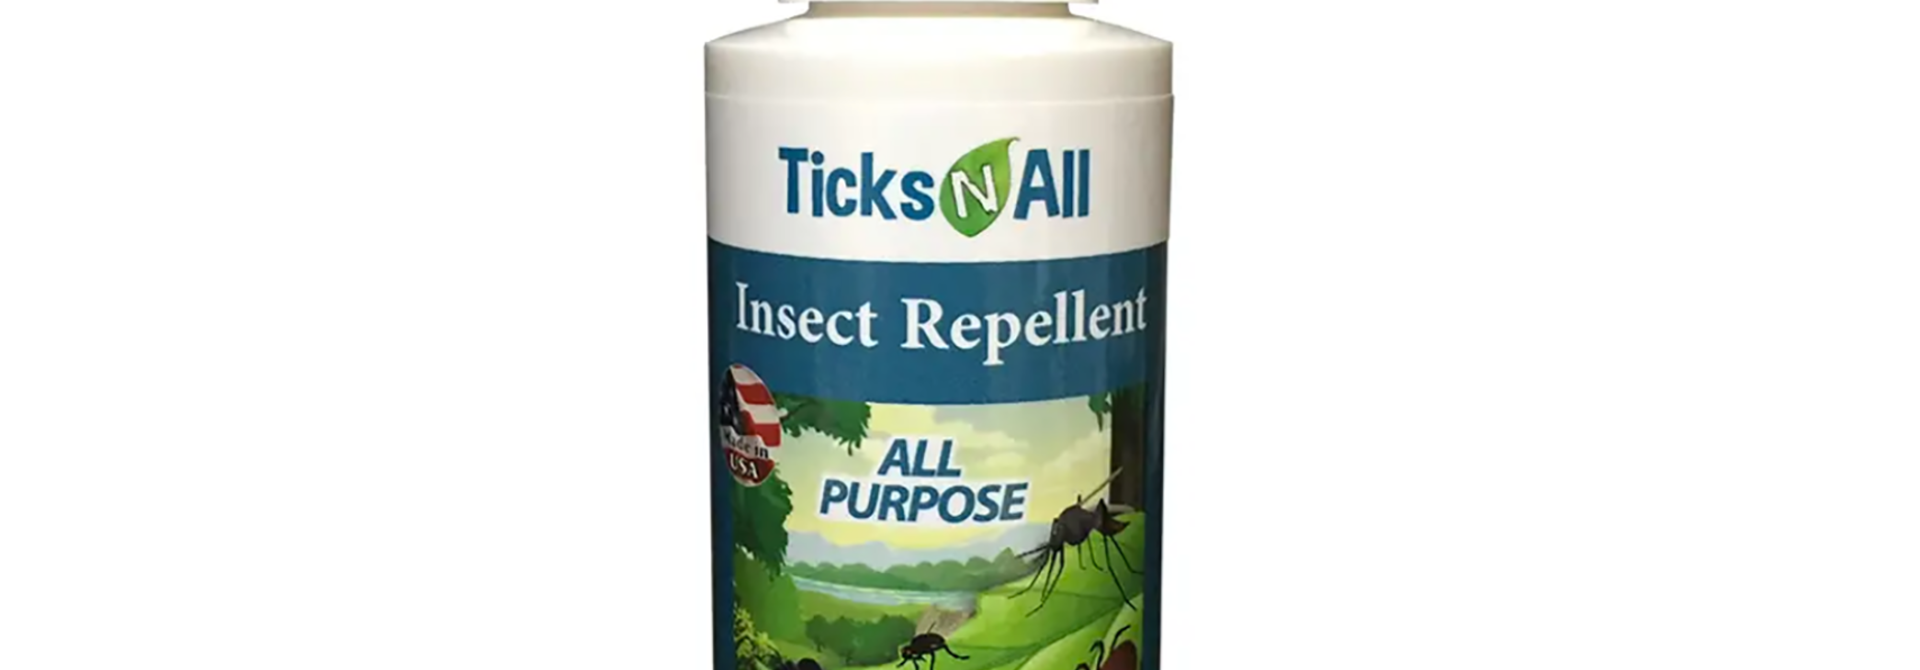 All Purpose Insect Repellent, 4 oz.